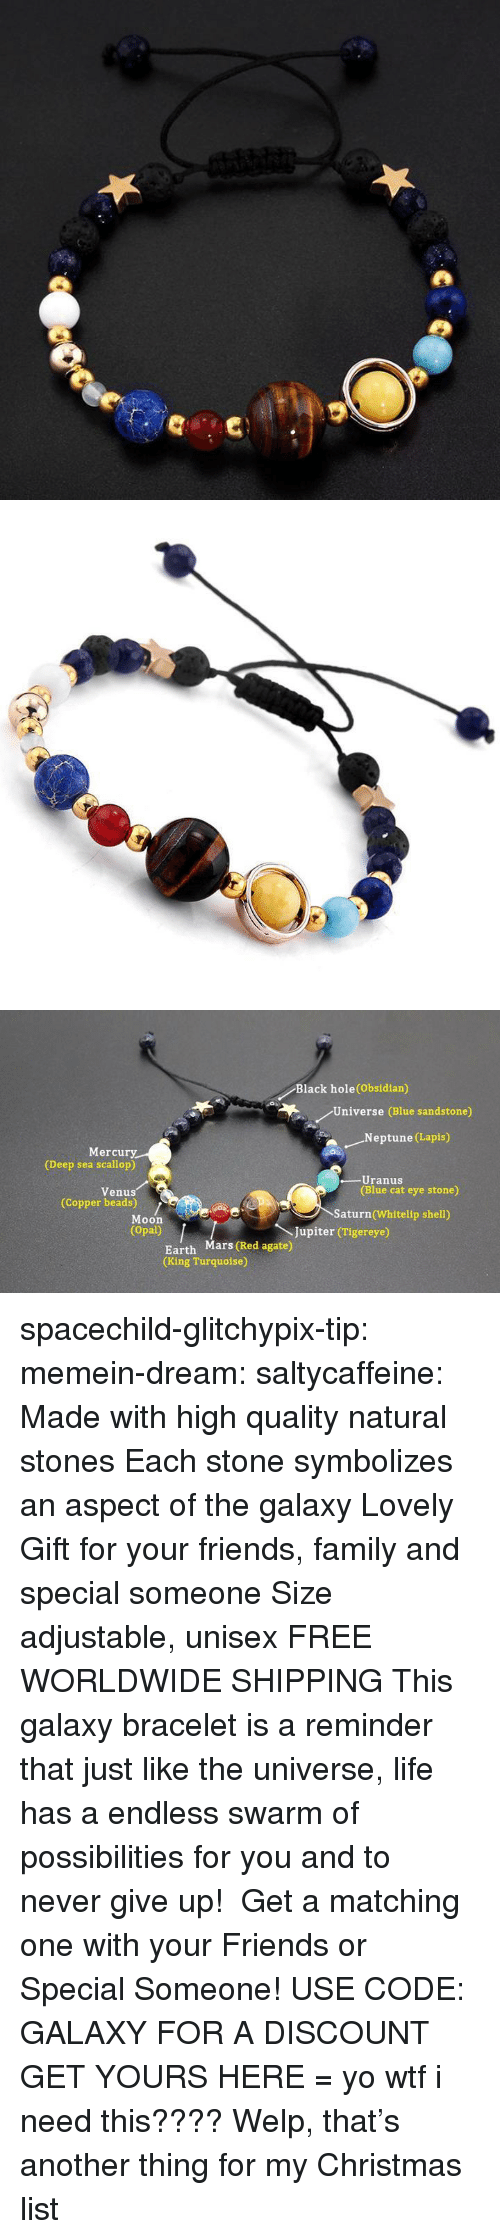 high class: Black hole(Obsidian)  Universe (Blue sandstone)  .Neptune (Lapis)  Mercury  (Deep sea scallop)  -Uranus  (Blue cat eye stone)  Venus  (Copper beads)  Saturn (Whitelip shell)  Moon  (Opal)  Jupiter (Tigereye)  Earth Mars (Red agate)  (King Turquoise) spacechild-glitchypix-tip:  memein-dream: saltycaffeine:  Made with high quality natural stones Each stone symbolizes an aspect of the galaxy Lovely Gift for your friends, family and special someone Size adjustable, unisex FREE WORLDWIDE SHIPPING This galaxy bracelet is a reminder that just like the universe, life has a endless swarm of possibilities for you and to never give up! Get a matching one with your Friends or Special Someone! USE CODE: GALAXY FOR A DISCOUNT GET YOURS HERE =  yo wtf i need this????  Welp, that's another thing for my Christmas list